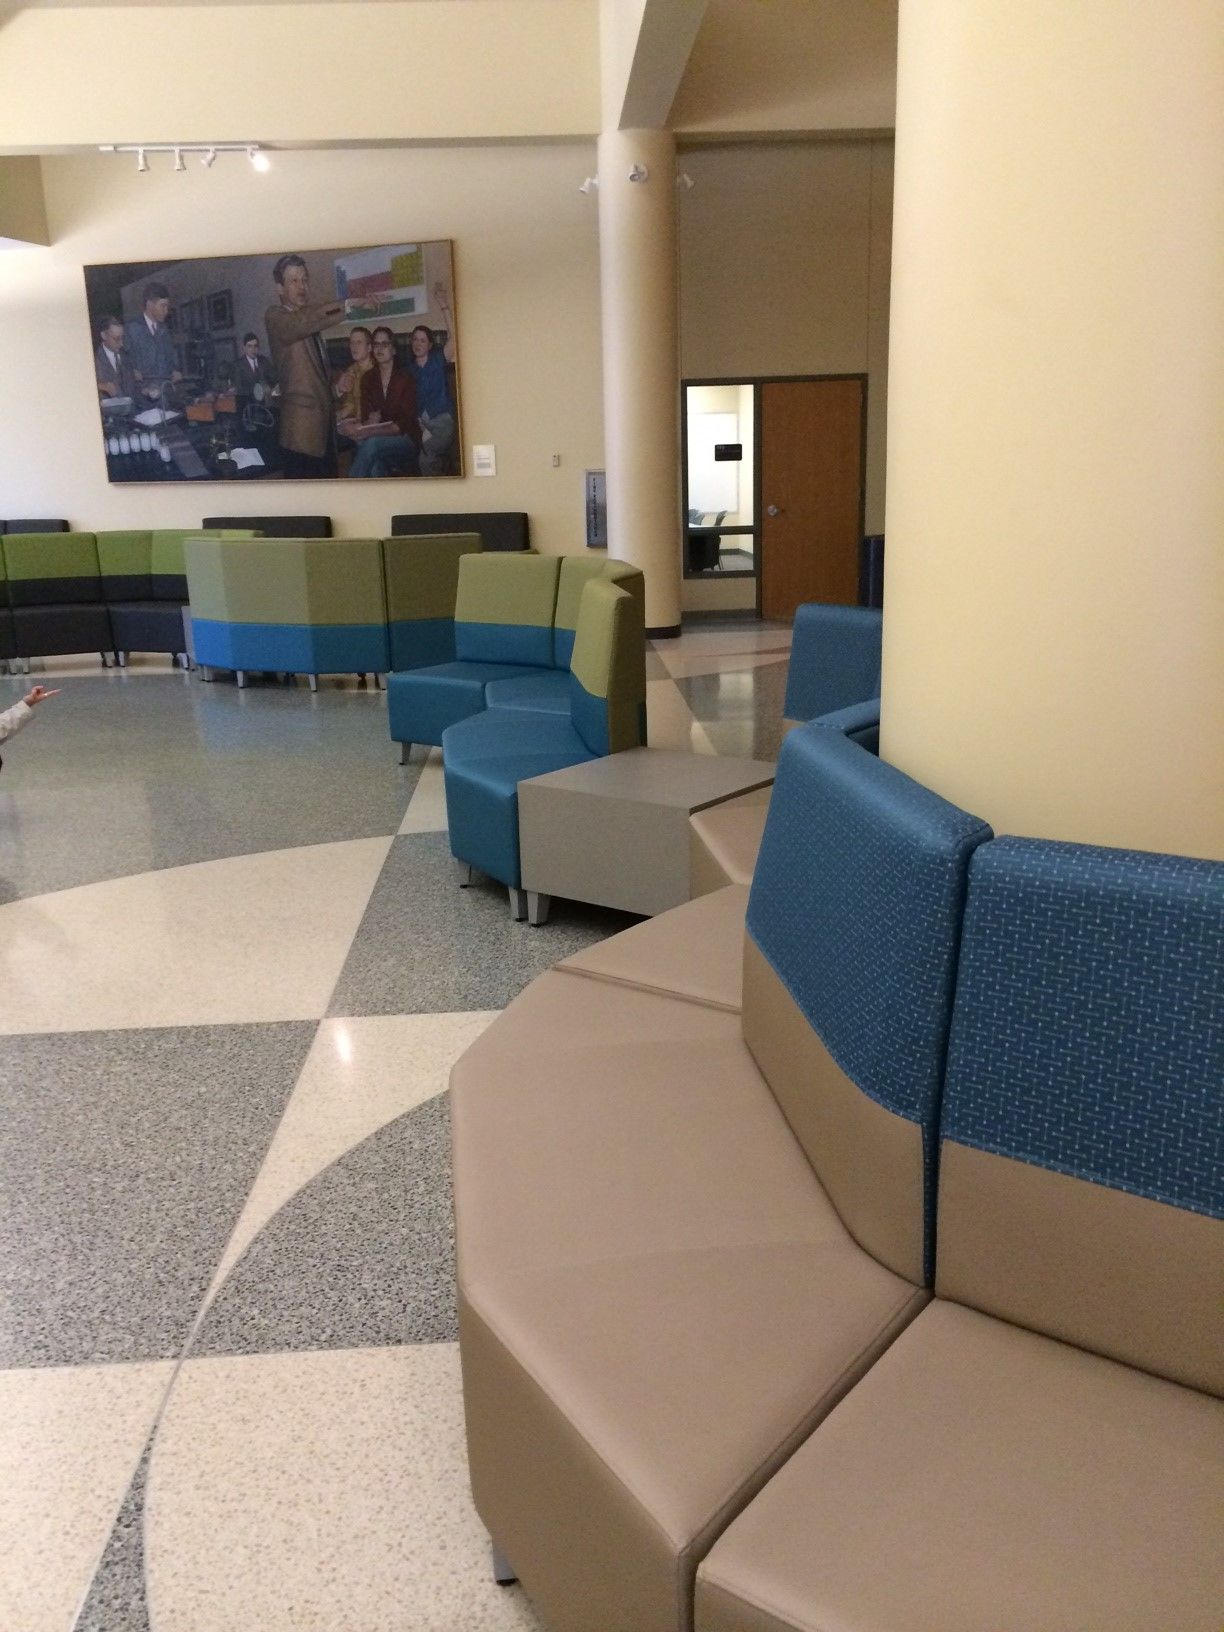 University Of Nebraska Othmer Hall Lincoln NE Fringe Lounge Furniture In Collaborative